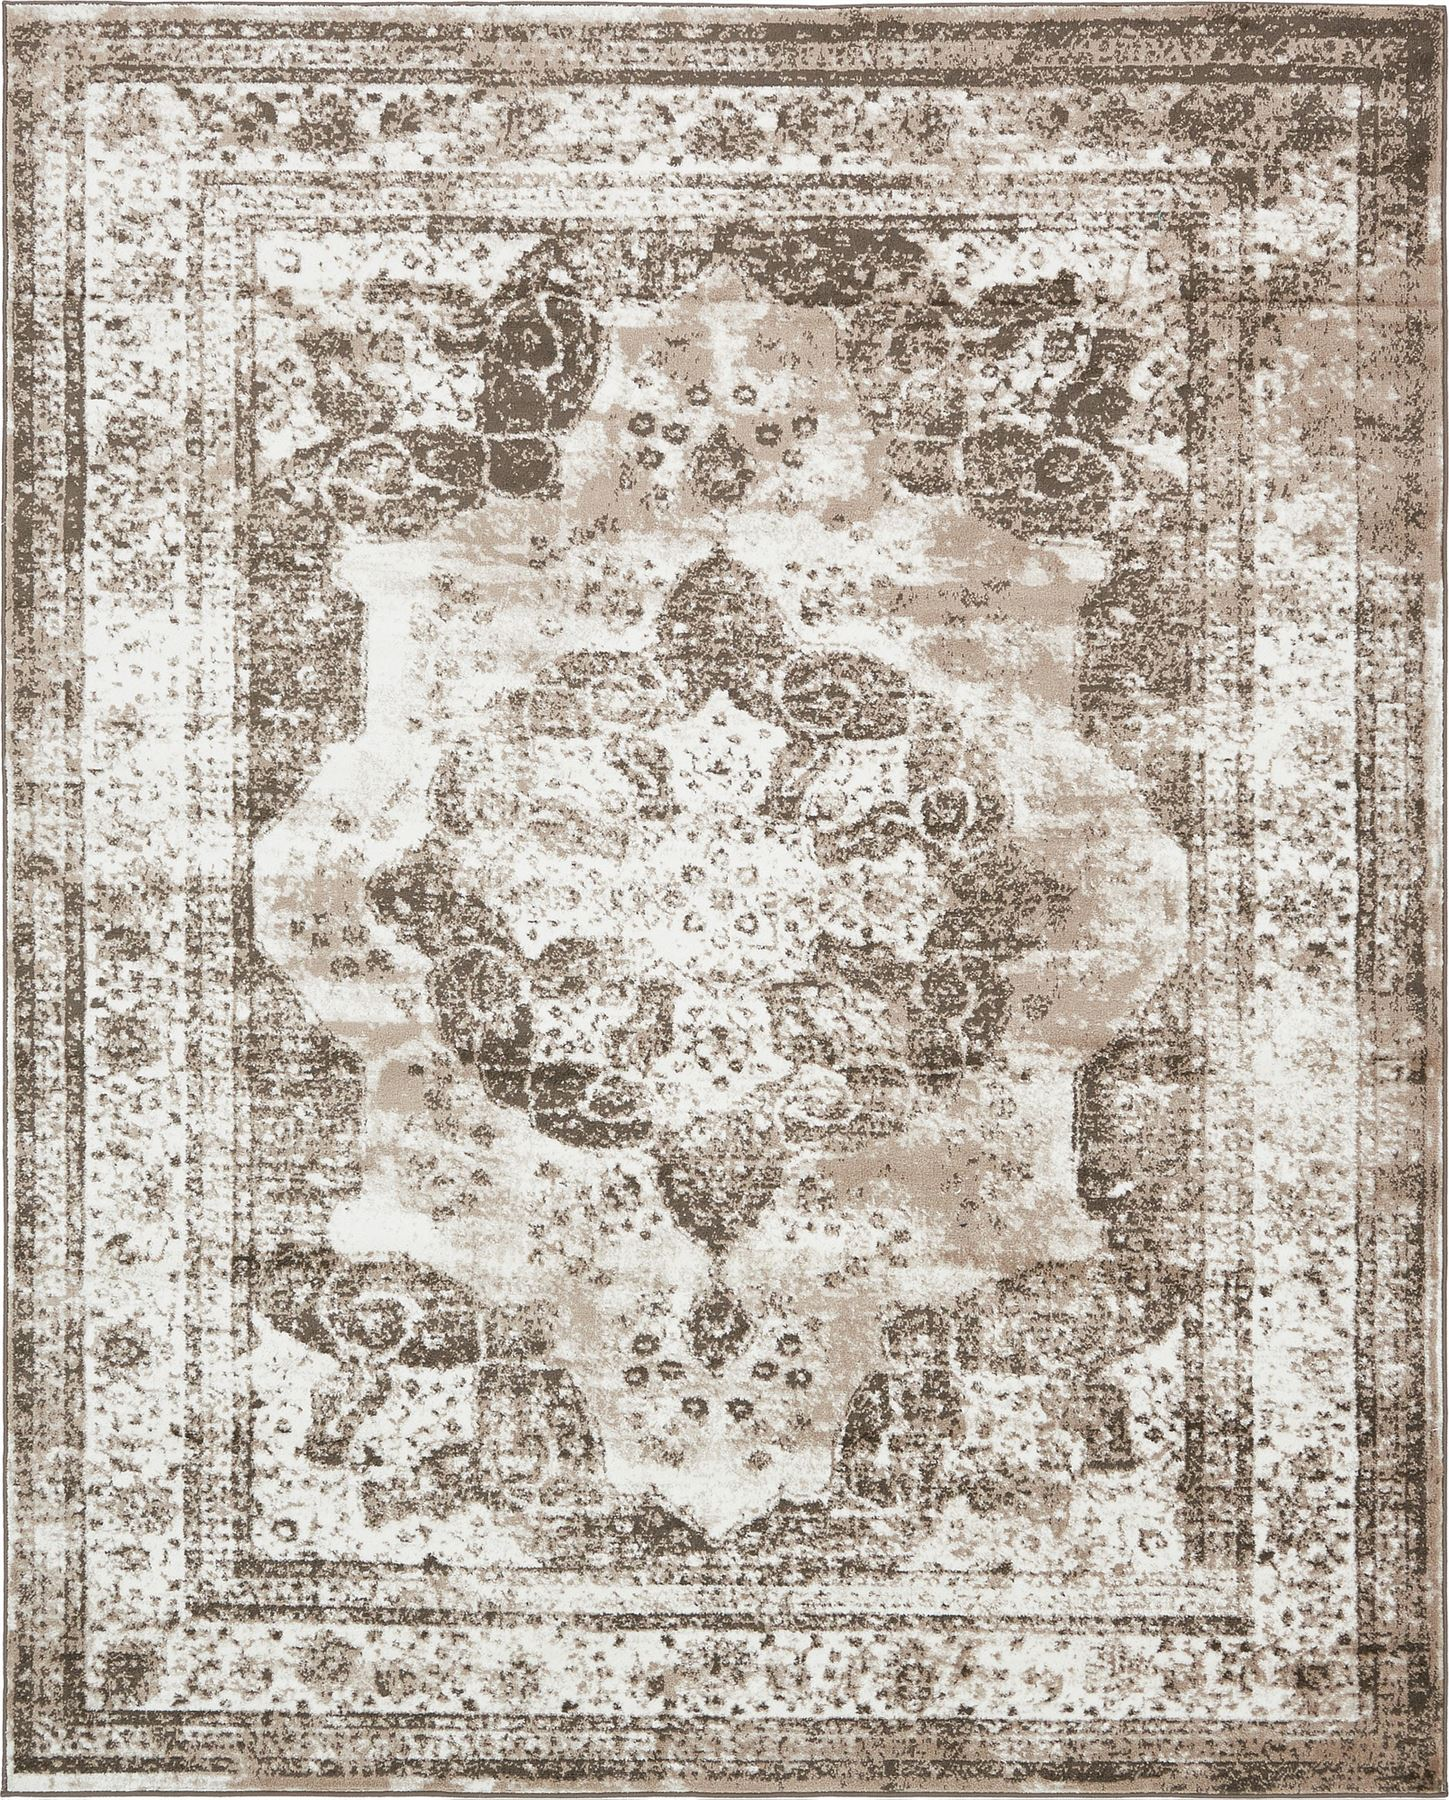 Modern Rugs Vintage: Oriental Persian Design Modern Carpet Contemporary Area